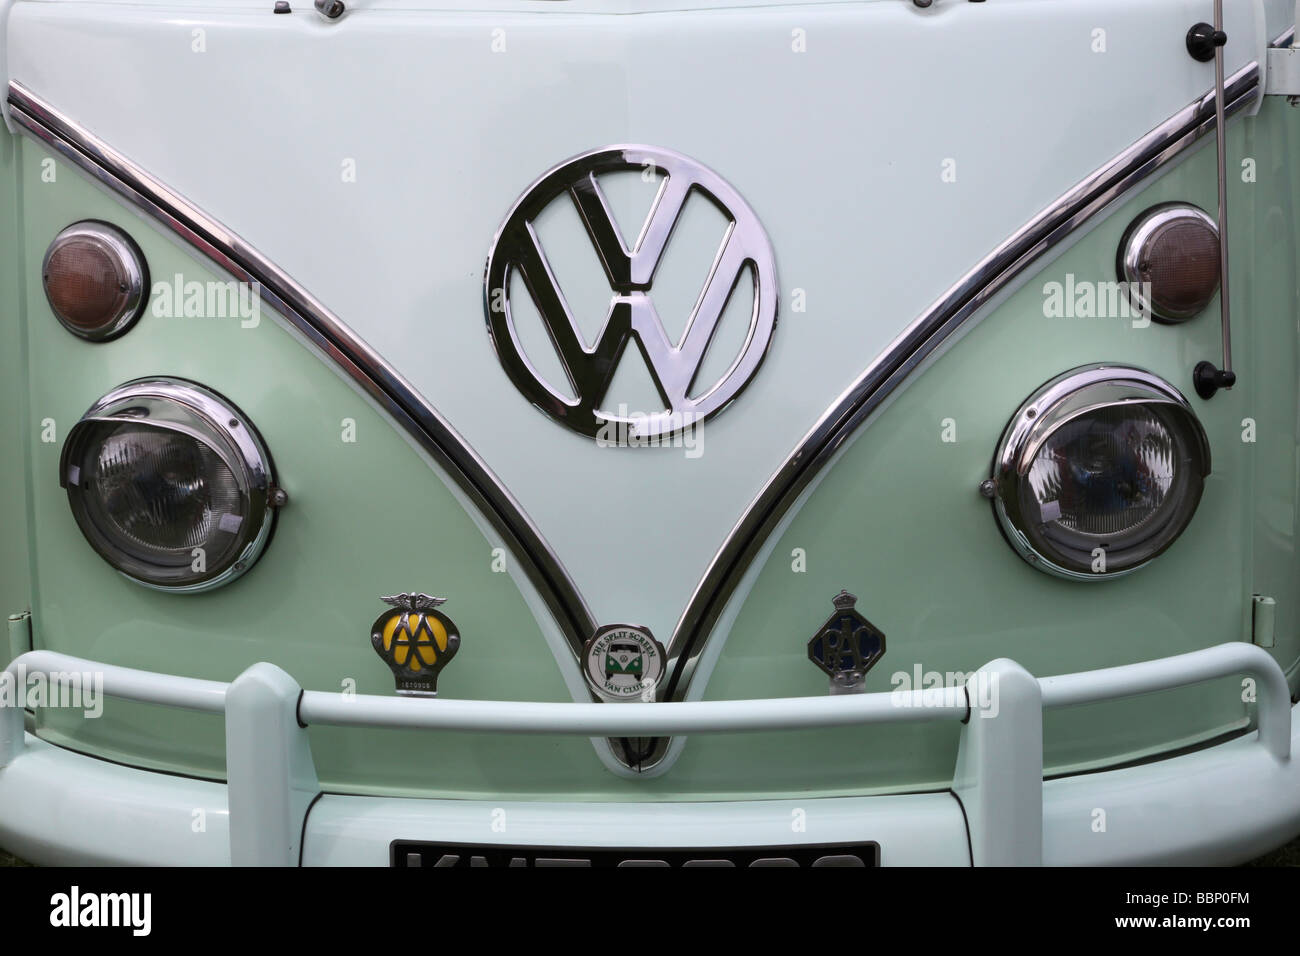 Front Of Green And White Vw Camper Van Showing The Vw Badge Stock Photo Alamy